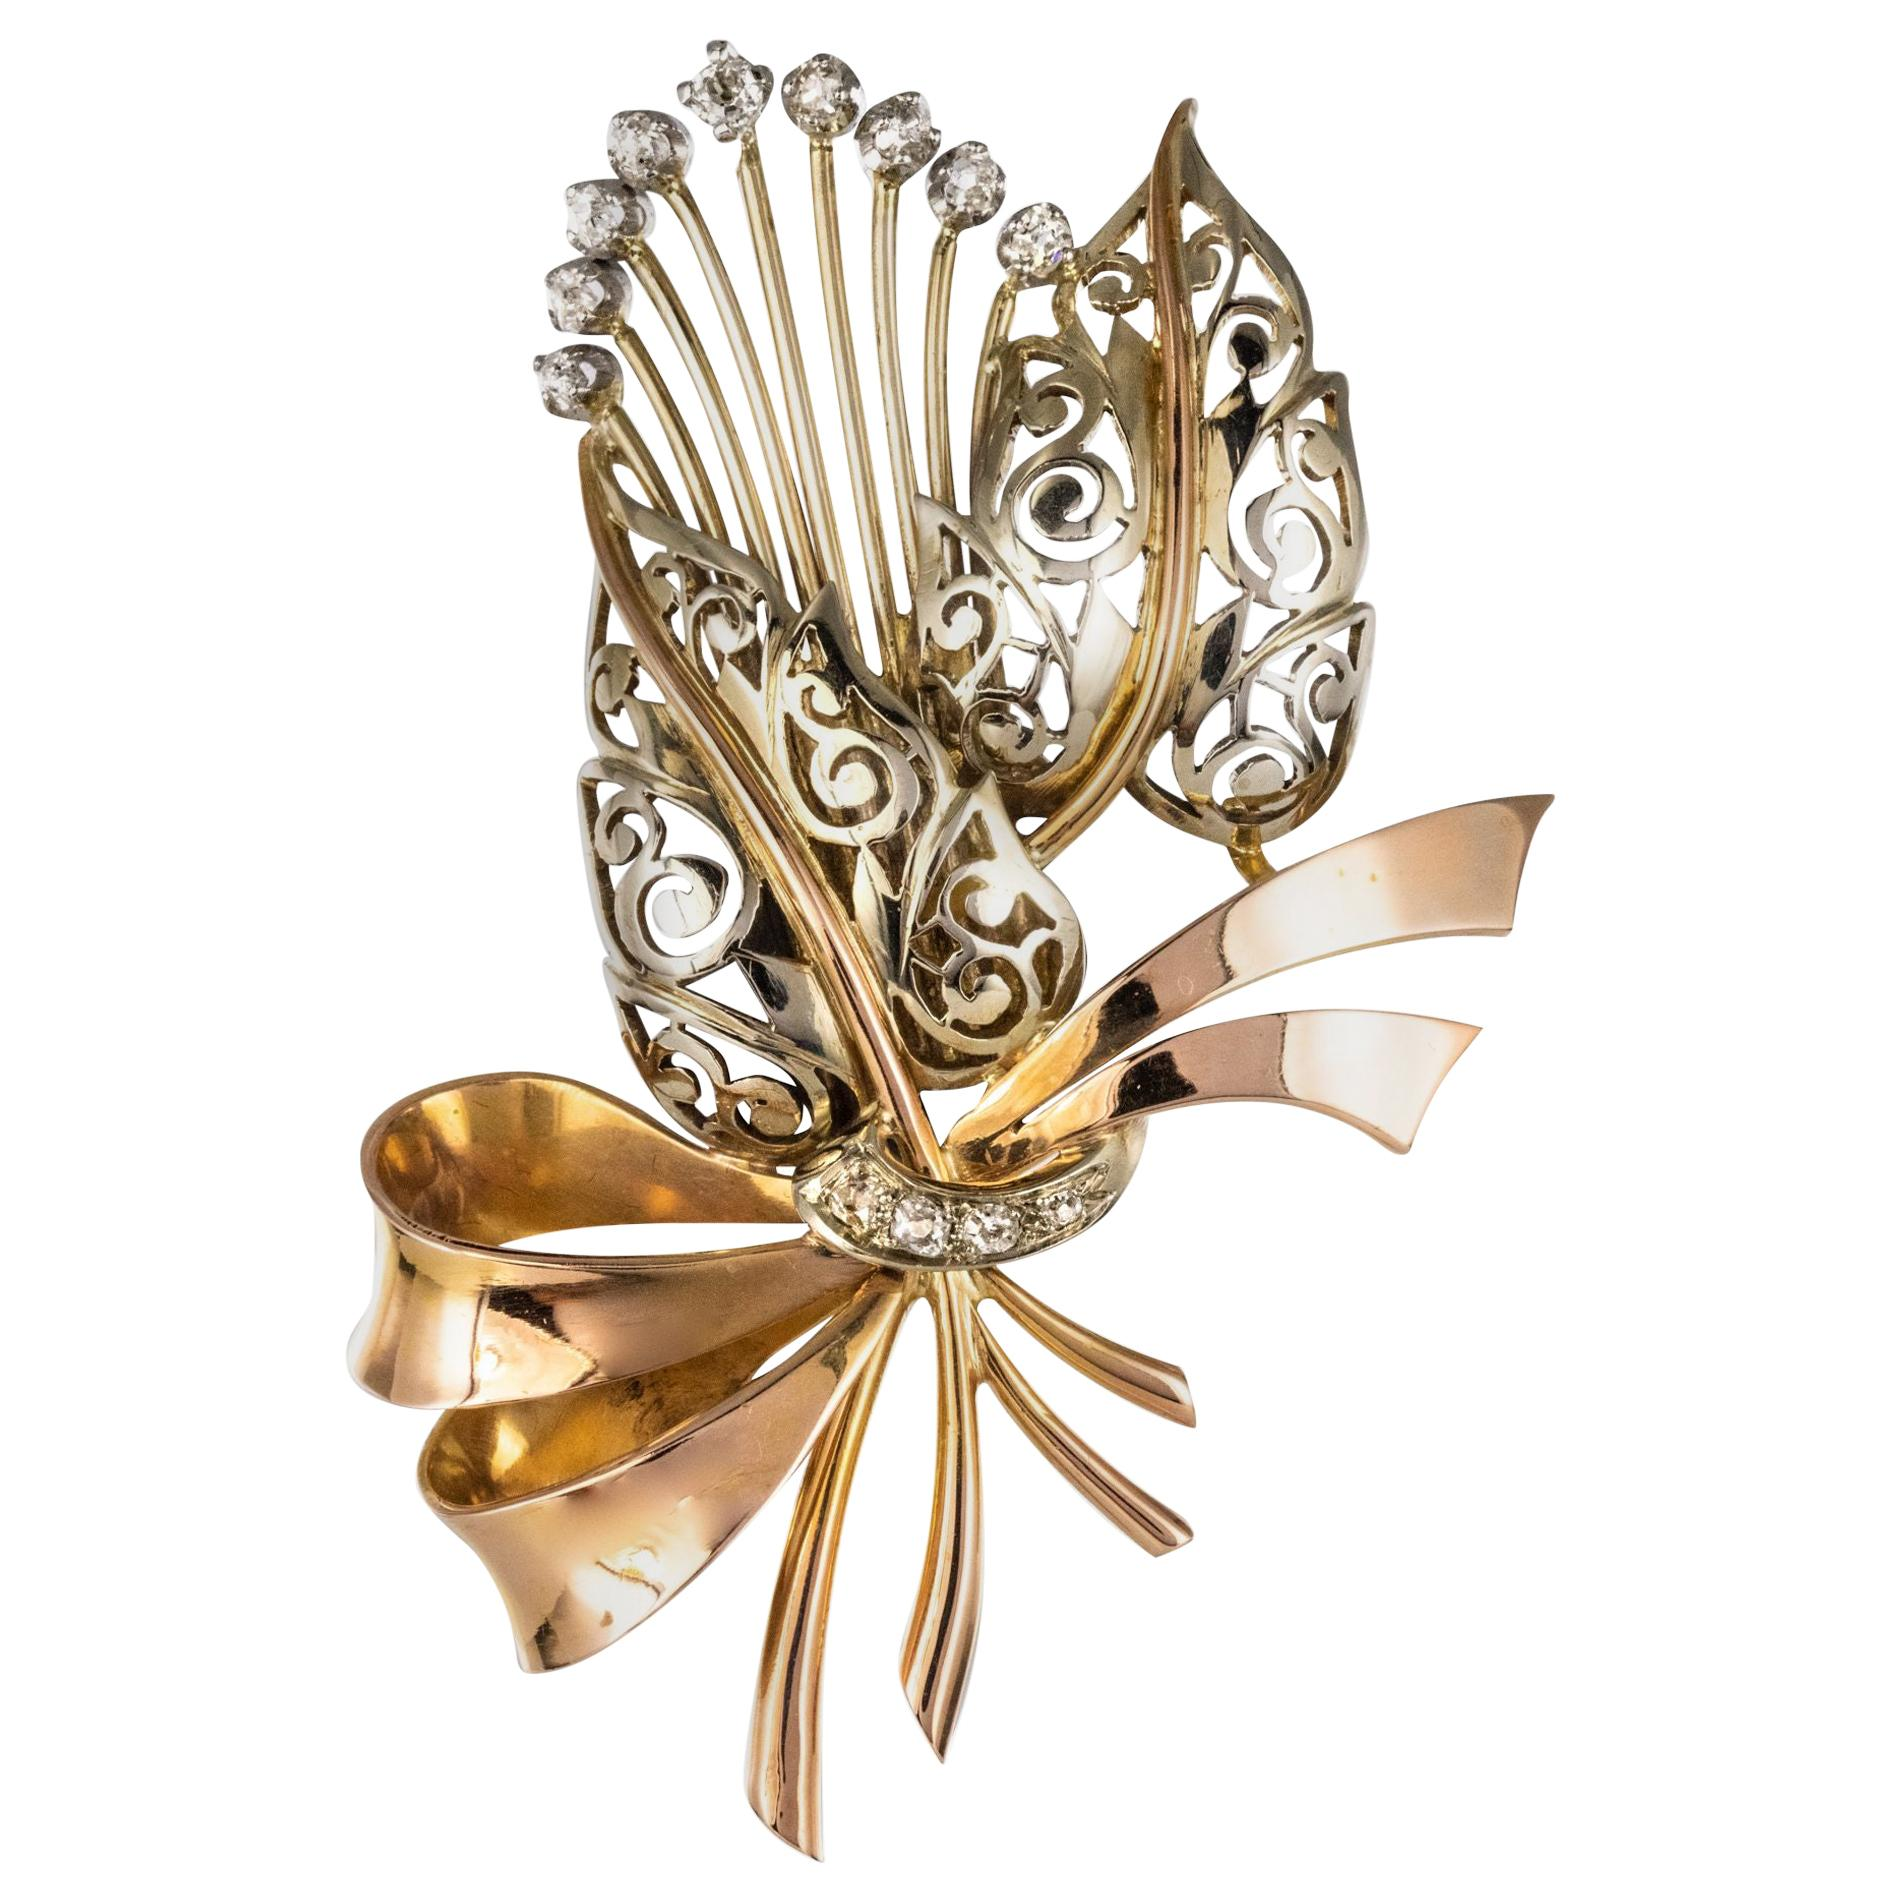 1950s French Retro Floral Bouquet Diamond 2 Gold Brooch